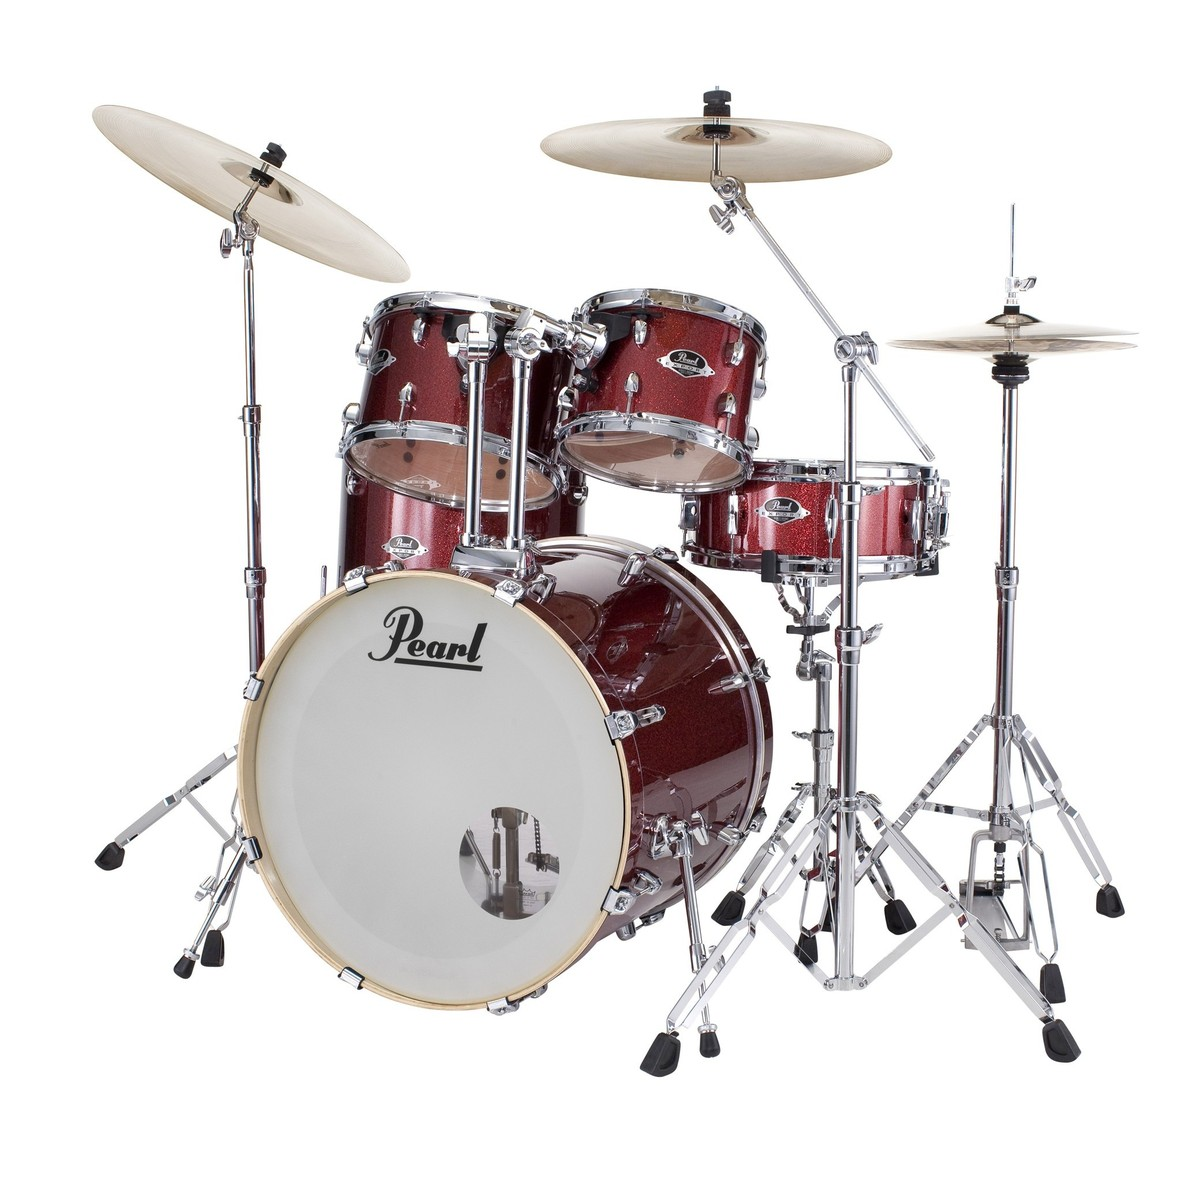 pearl export exx 22 fusion drum kit black cherry glitter at gear4music. Black Bedroom Furniture Sets. Home Design Ideas